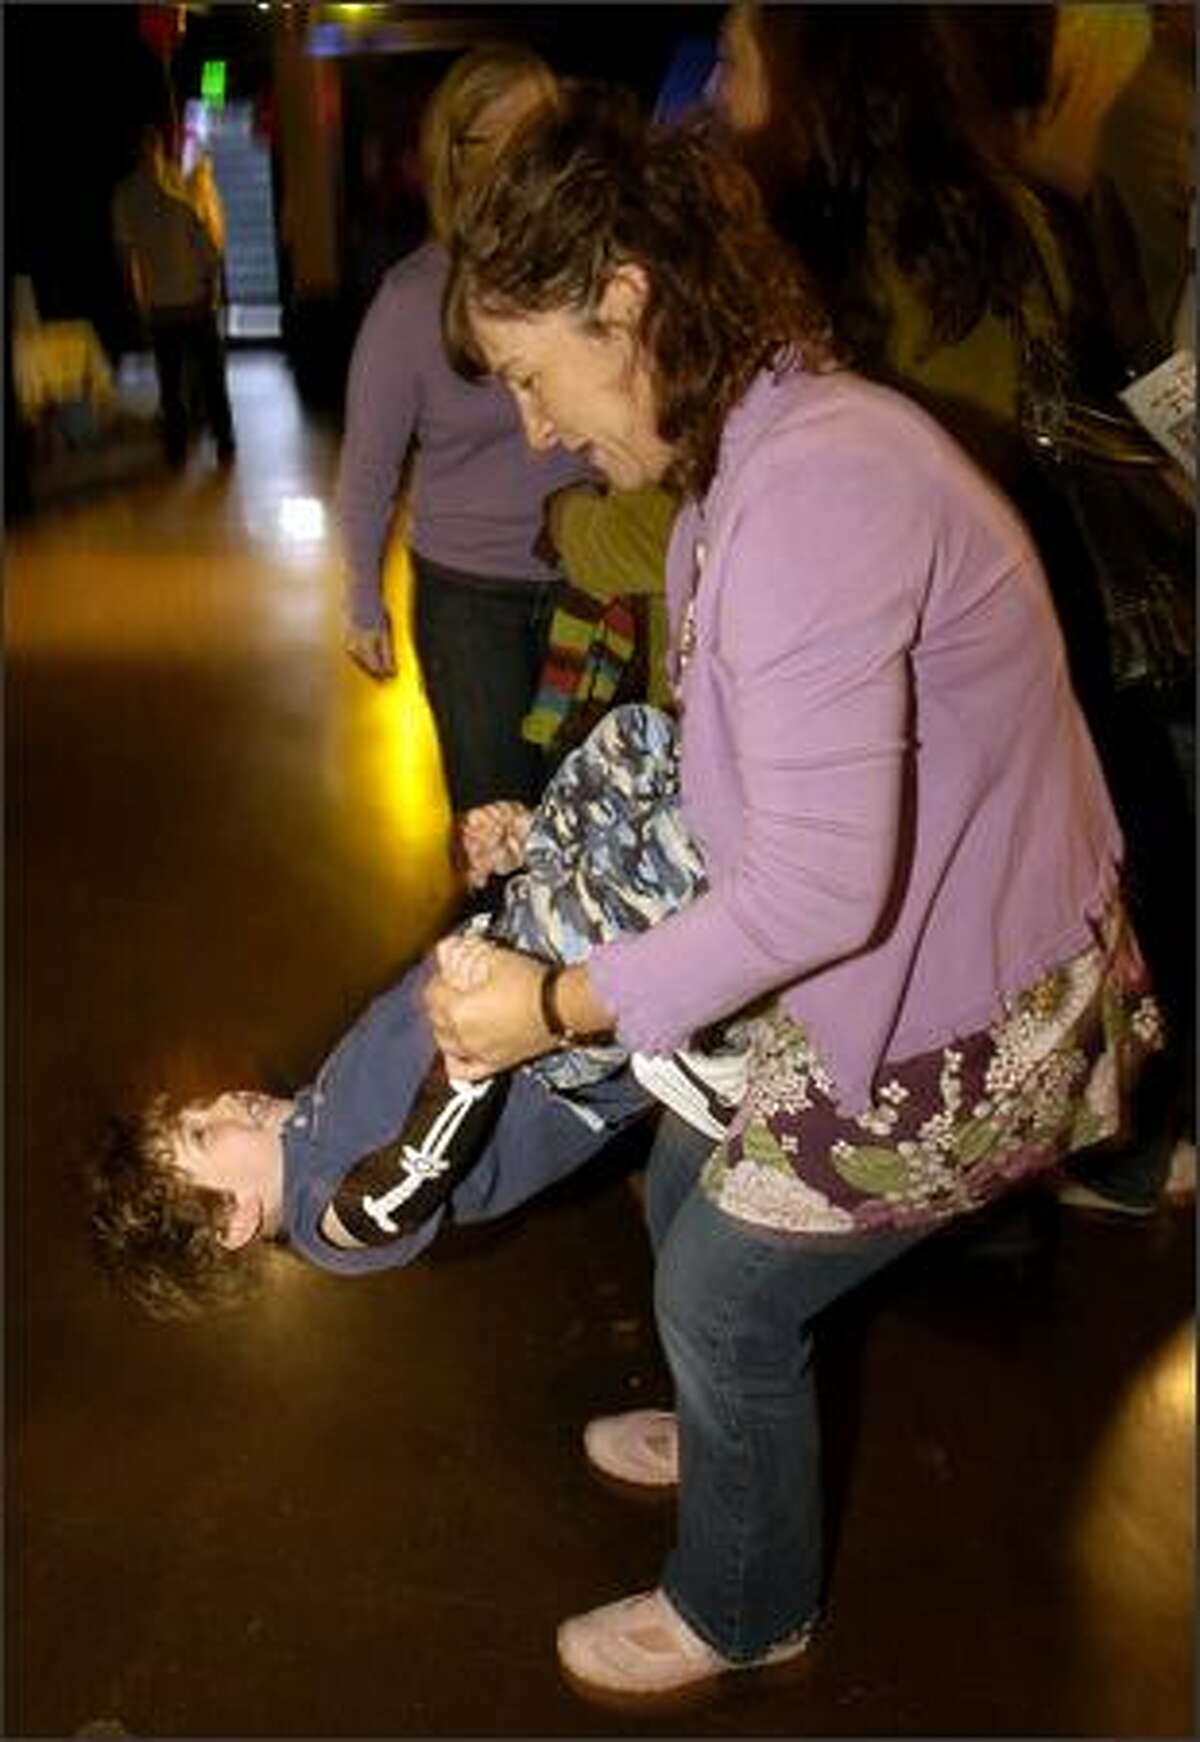 Harris Weiskopf, 4, turns upside down while dancing with mom Hope at Saturday's Baby Loves Disco party held at Club Heaven in Seattle.